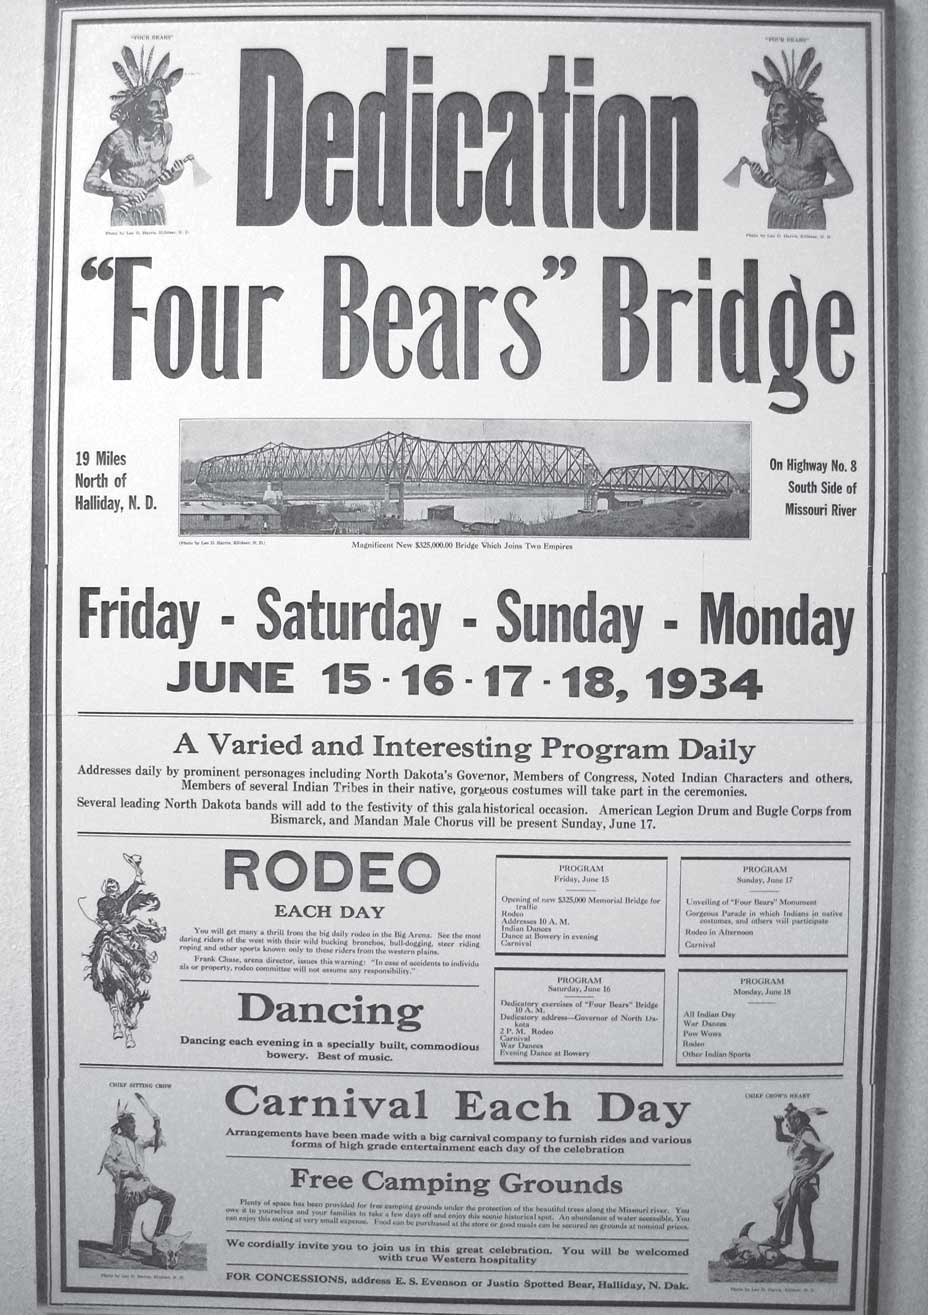 Dedication of the Four Bears Bridge.